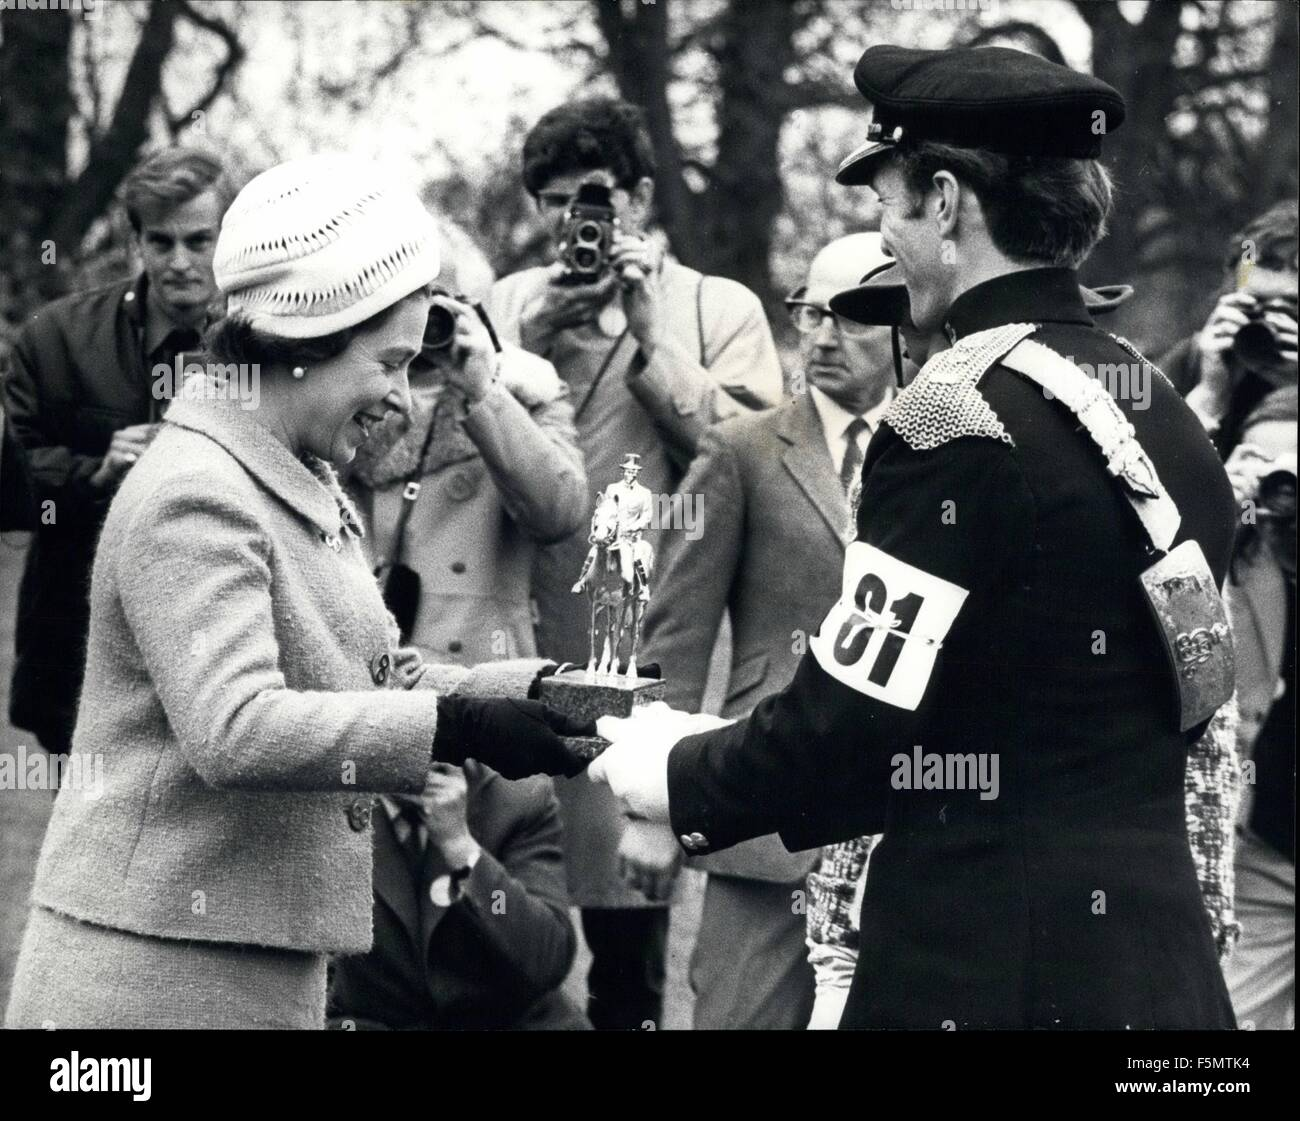 1954 - Her Majesty The Queen presents the winners trophy to Mark Phillips - her future son-in-law?? For the second Stock Photo